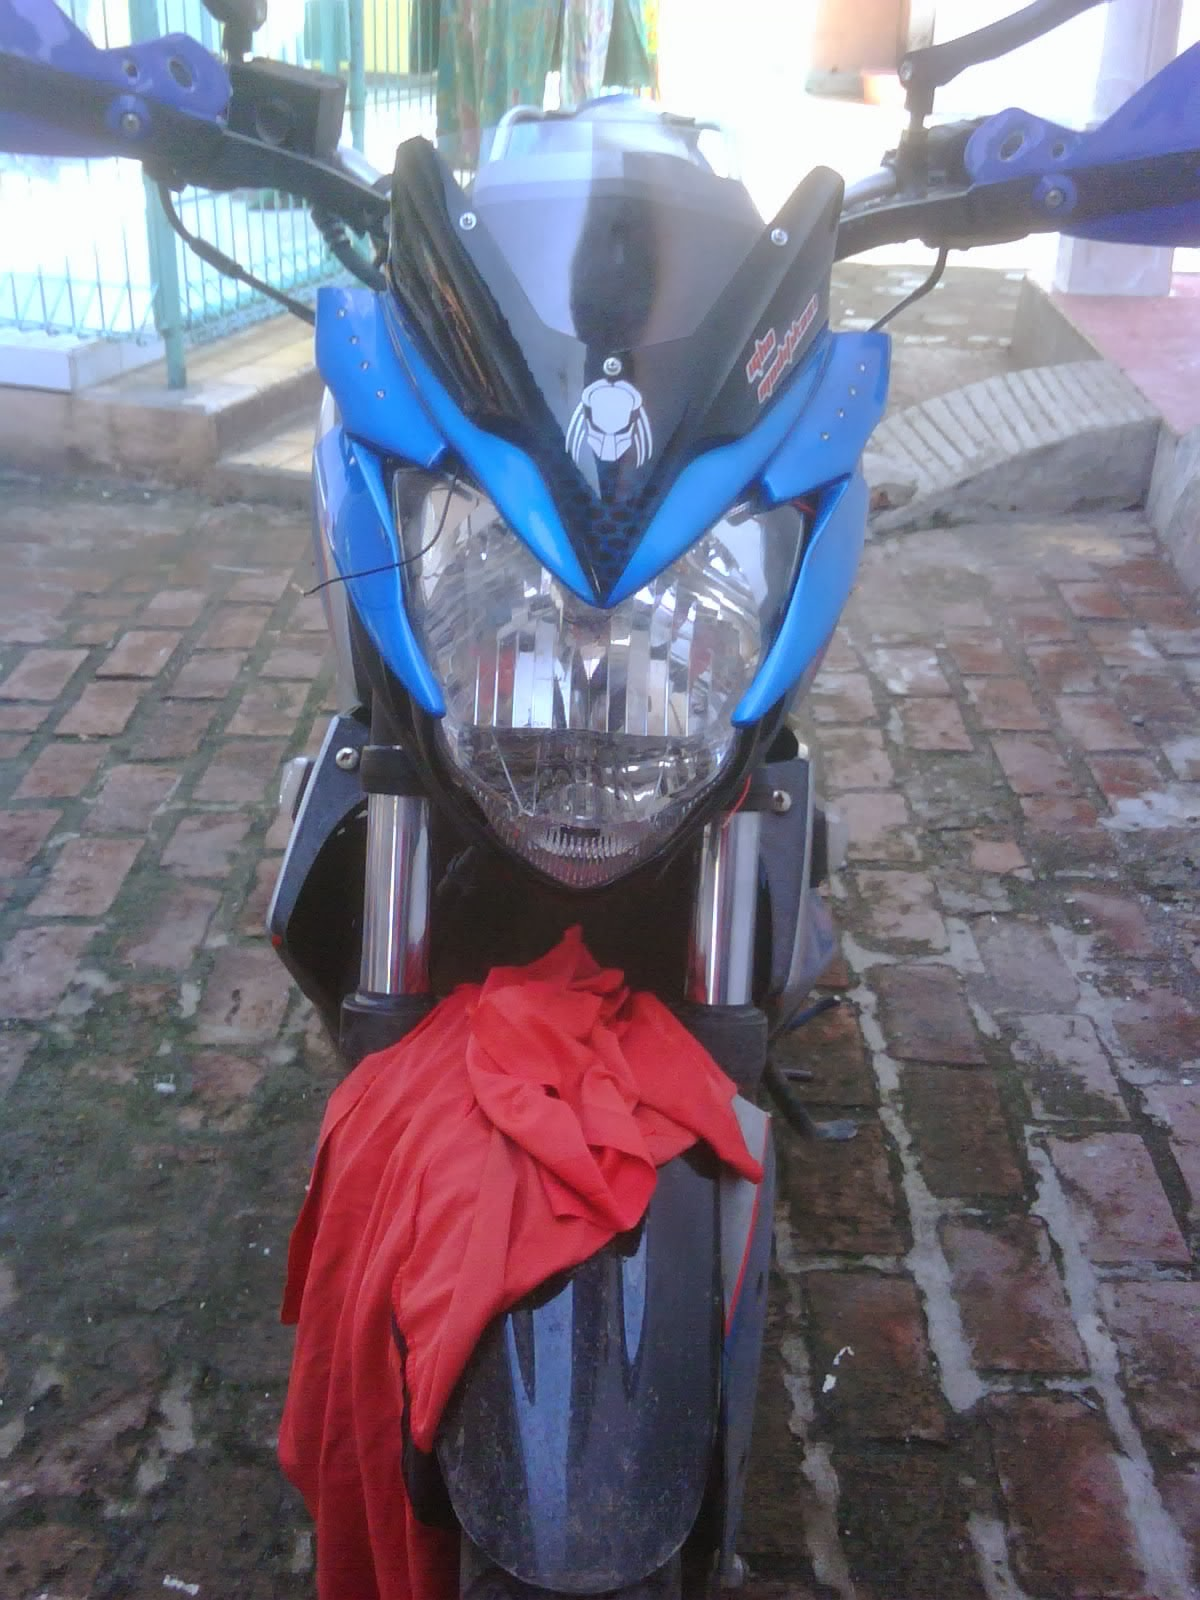 cover headlamp byson, batok lampu byson, cover lampu byson, headlamp byson, aksesoris byson, kedok lampu byson, cover headlamp byson transformer, cover headlamp byson gsr, cover headlamp byson z250, cover headlamp byson streetfighter, headlamp streetfighter byson, cover headlamp byson gsr 750, jual cover headlamp byson, otomotif, jual beli, igho modifikasi